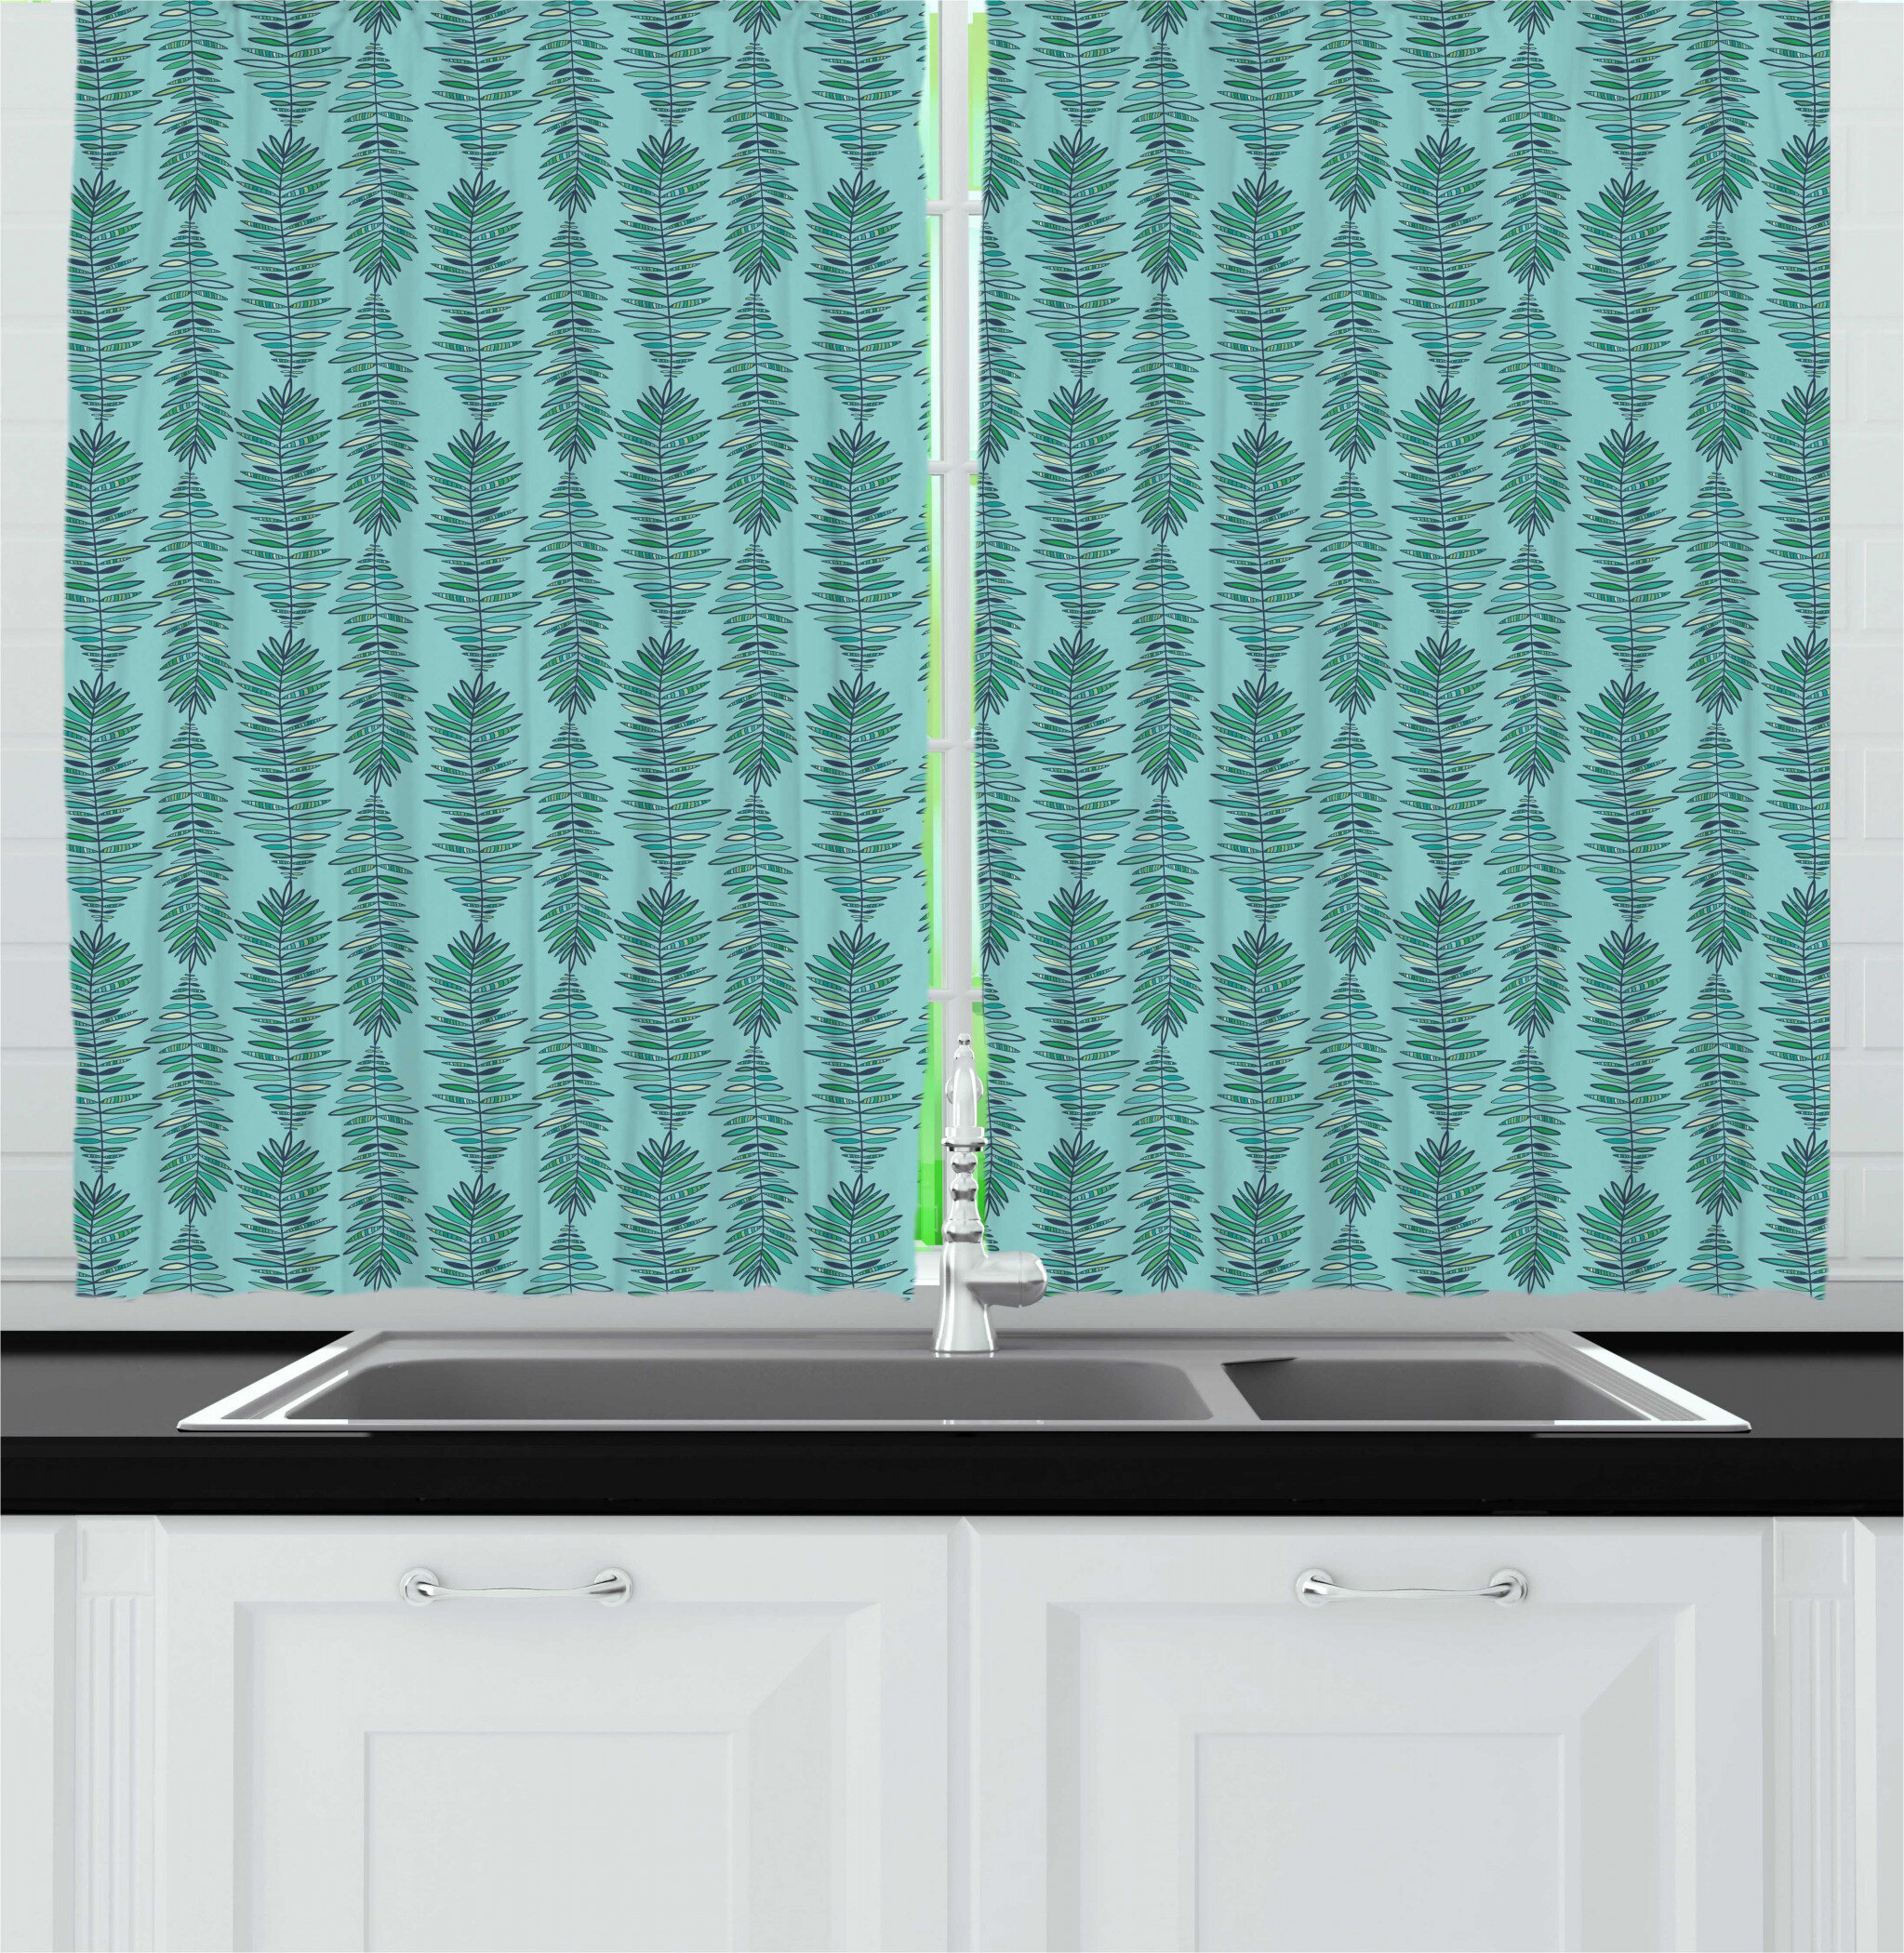 East Urban Home Nature Leafy Vertical Strips Feathers Bohemian Feels Kitchen Curtain Wayfair